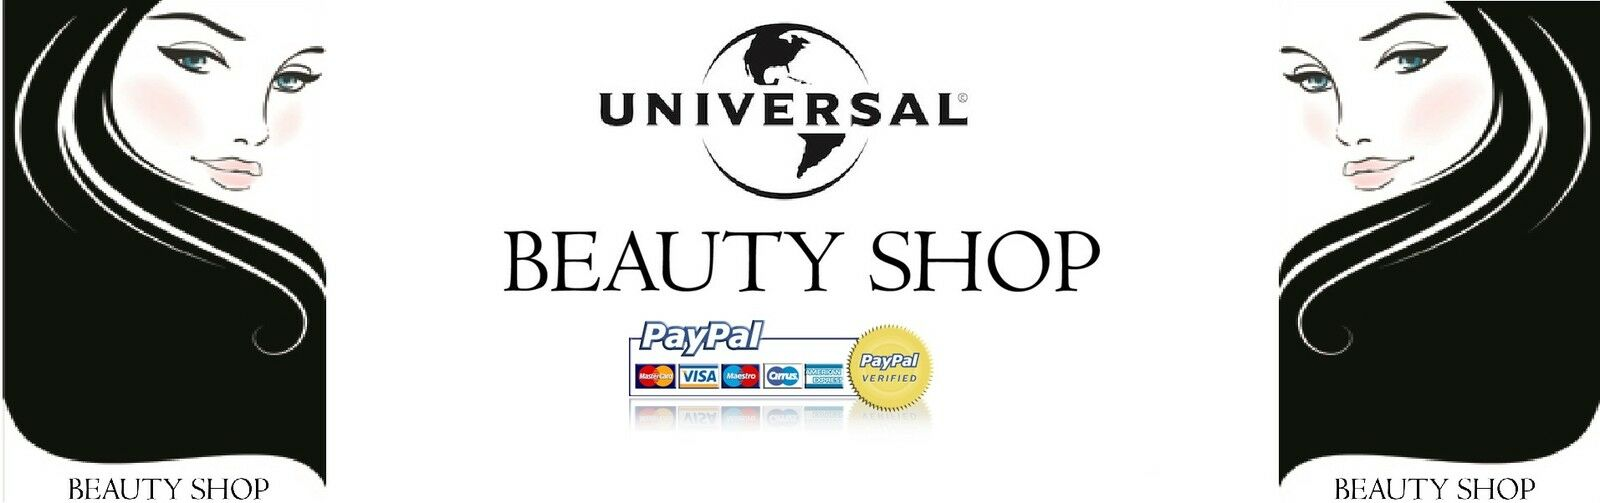 Universal Beauty Shop